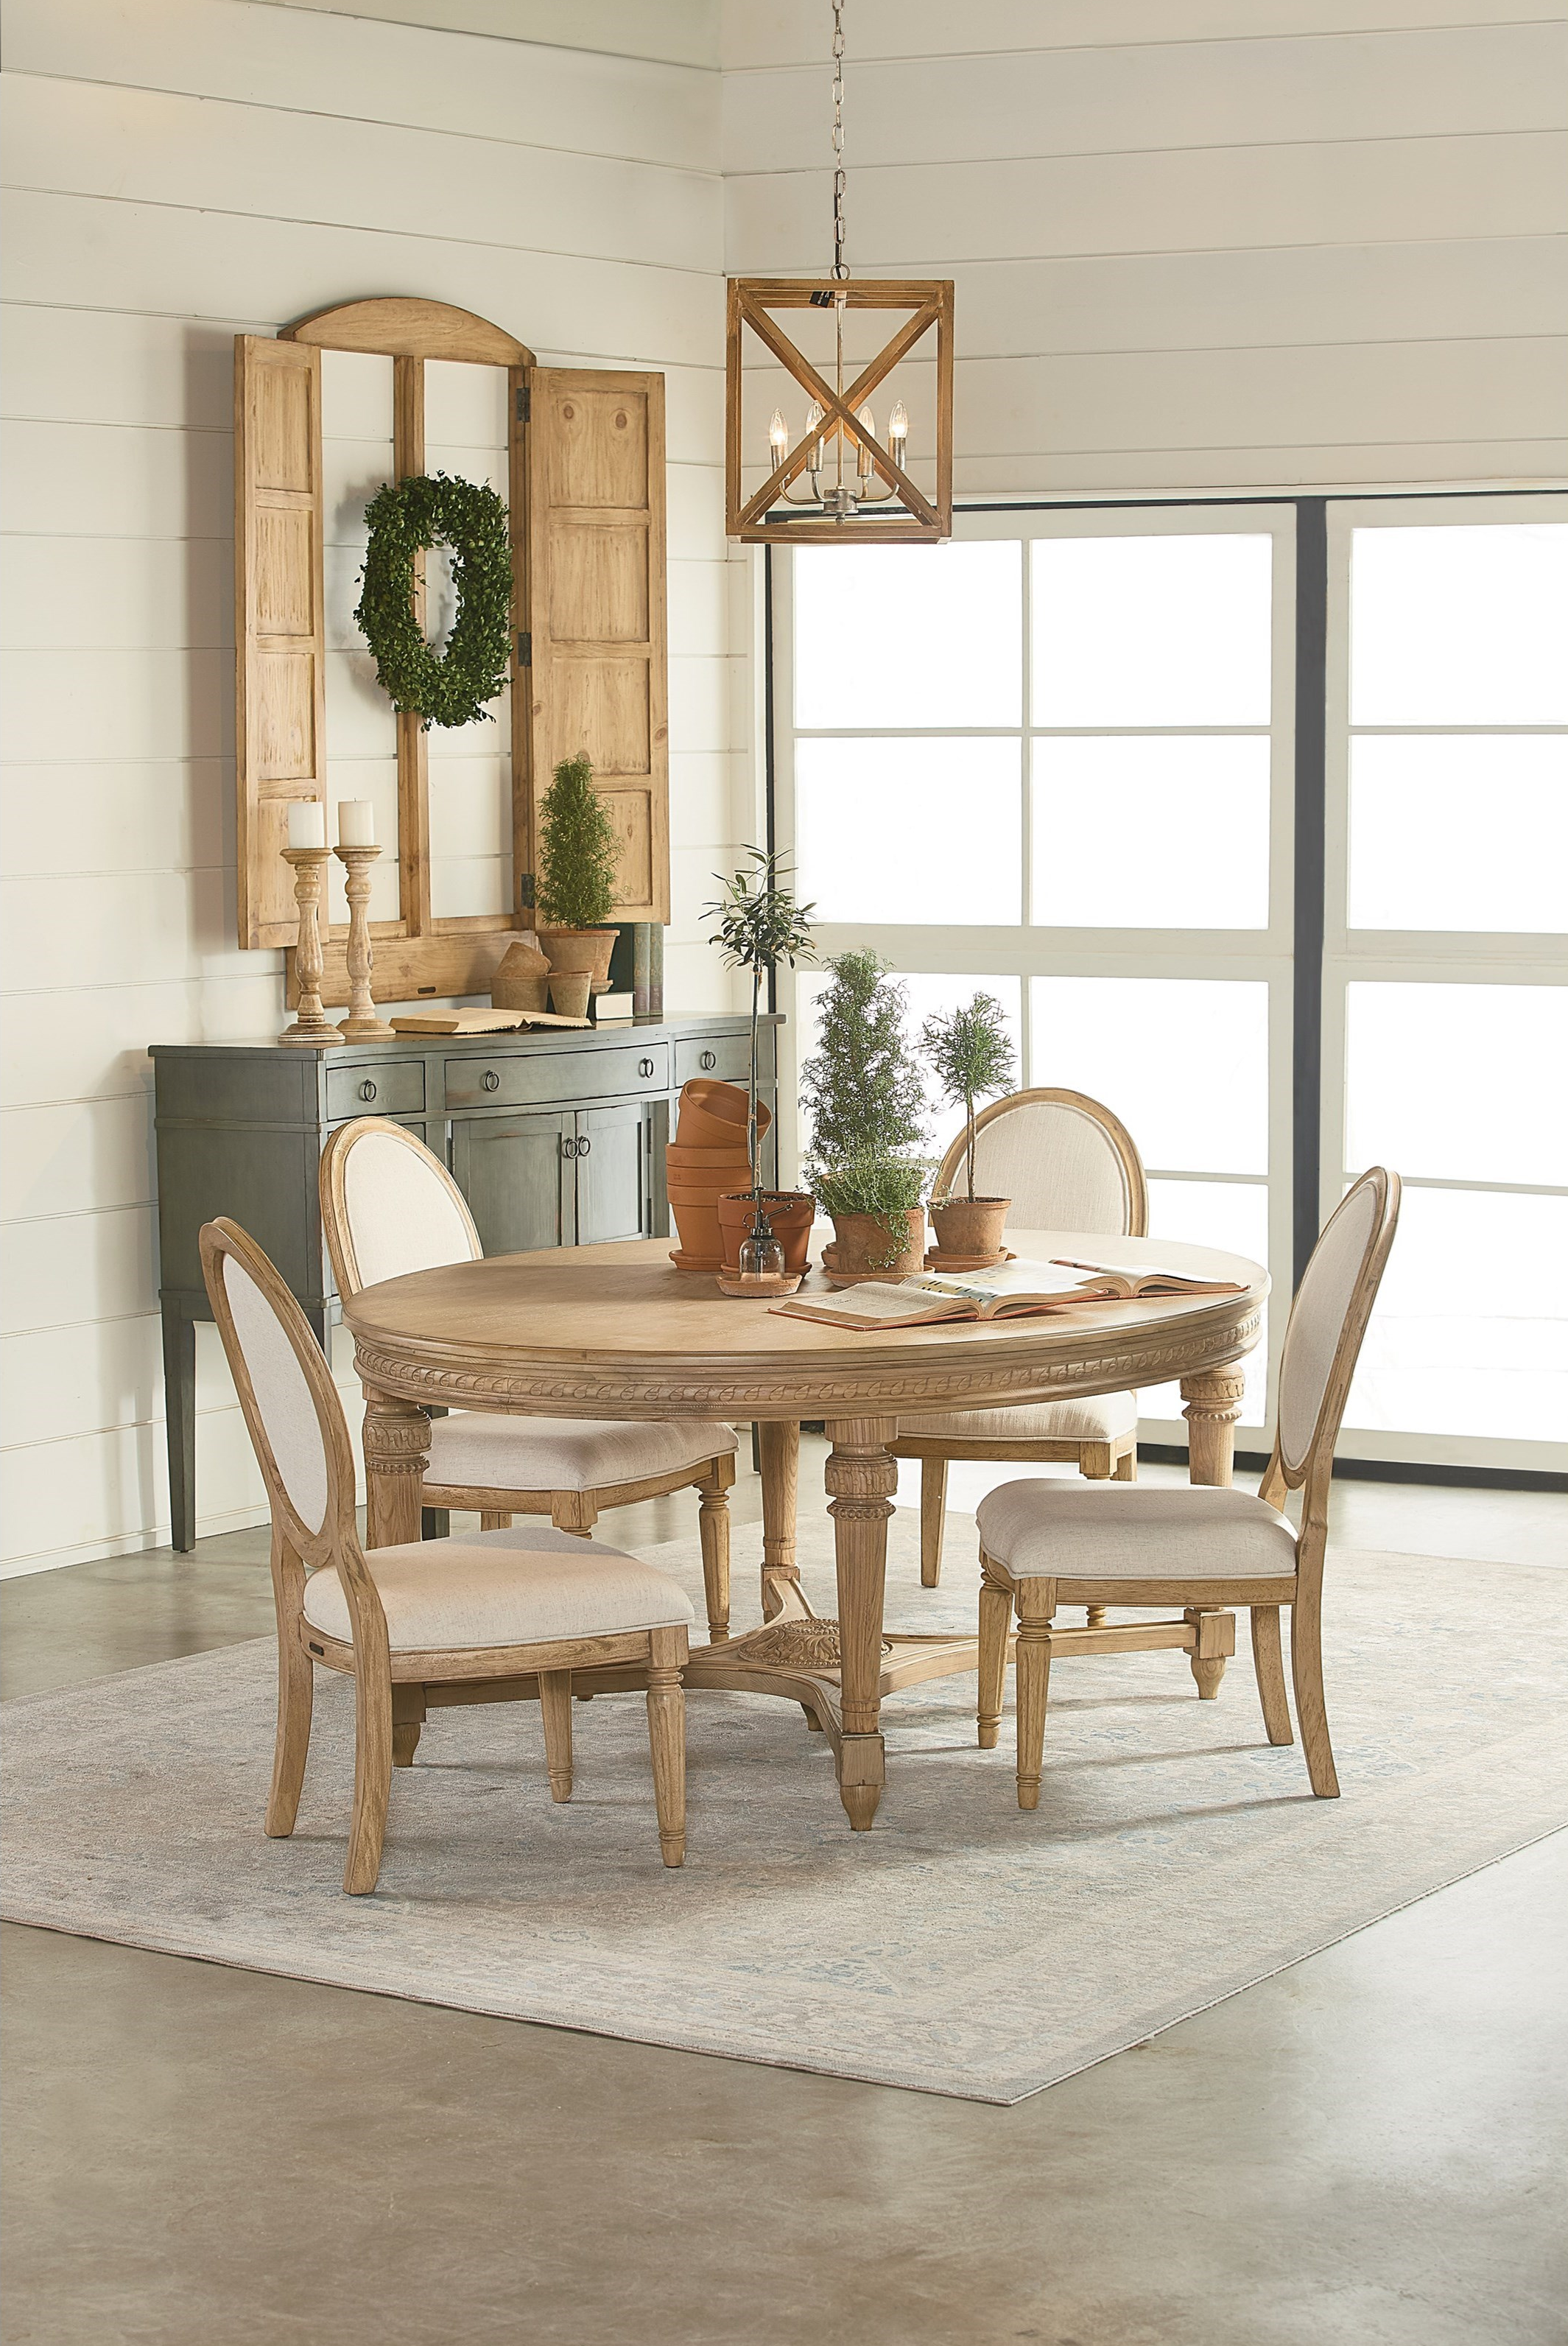 Magnolia home by joanna gaines traditional casual dining room group this traditional dining room set includes a table 4 chairs and sideboard